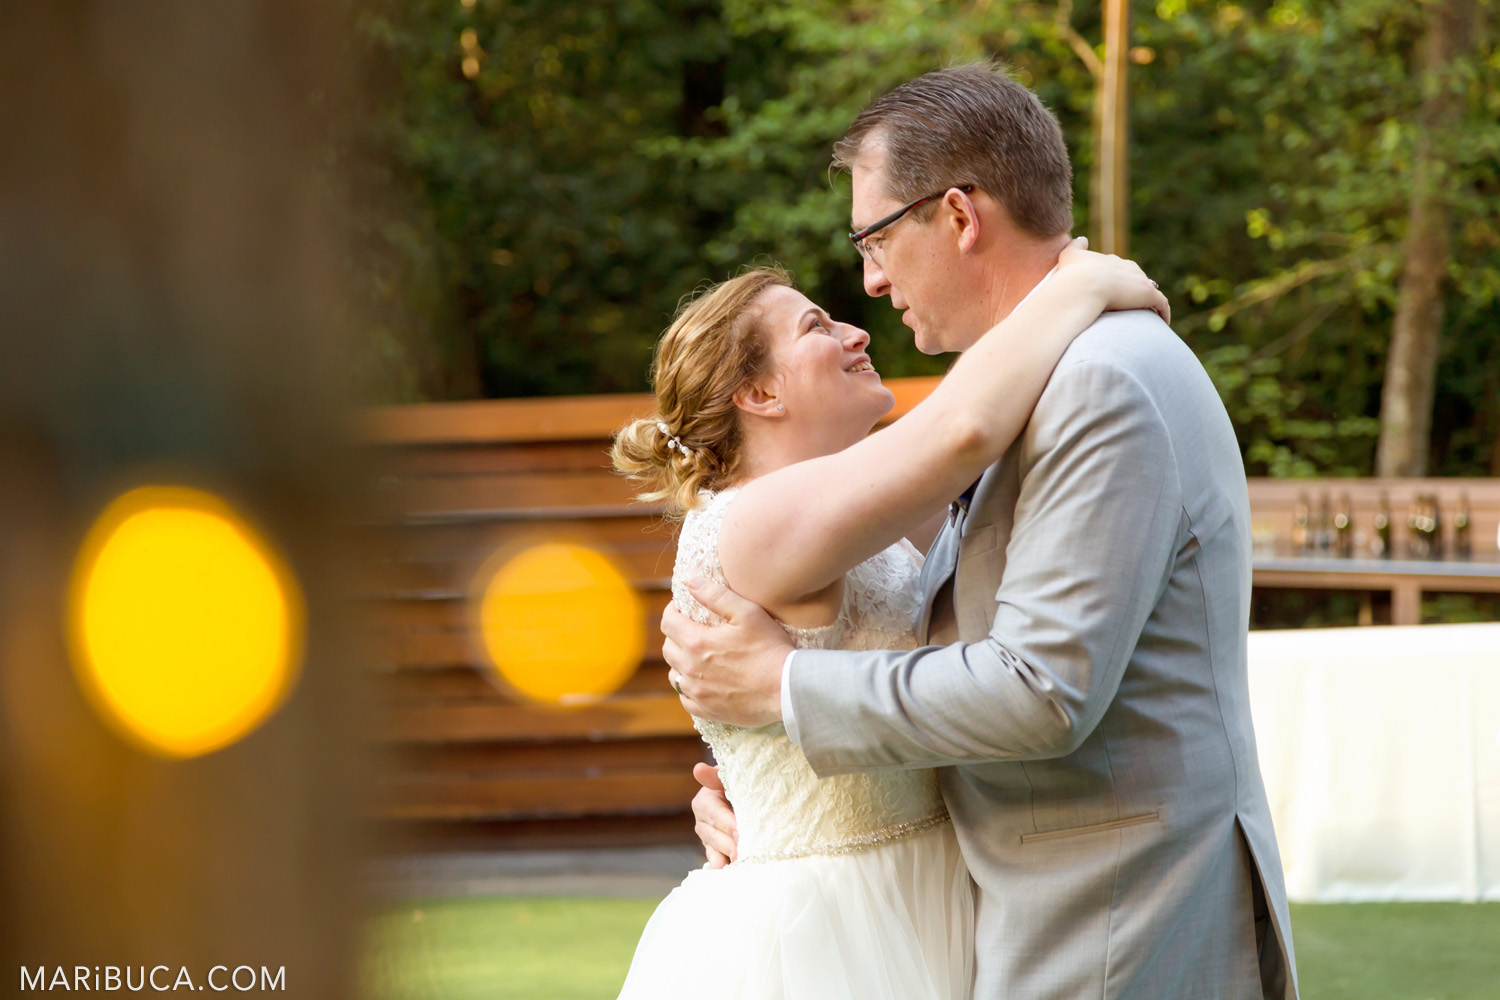 The bride and groom look each other during the first dance and surrounded orange lights in the Saratoga Springs Wedding